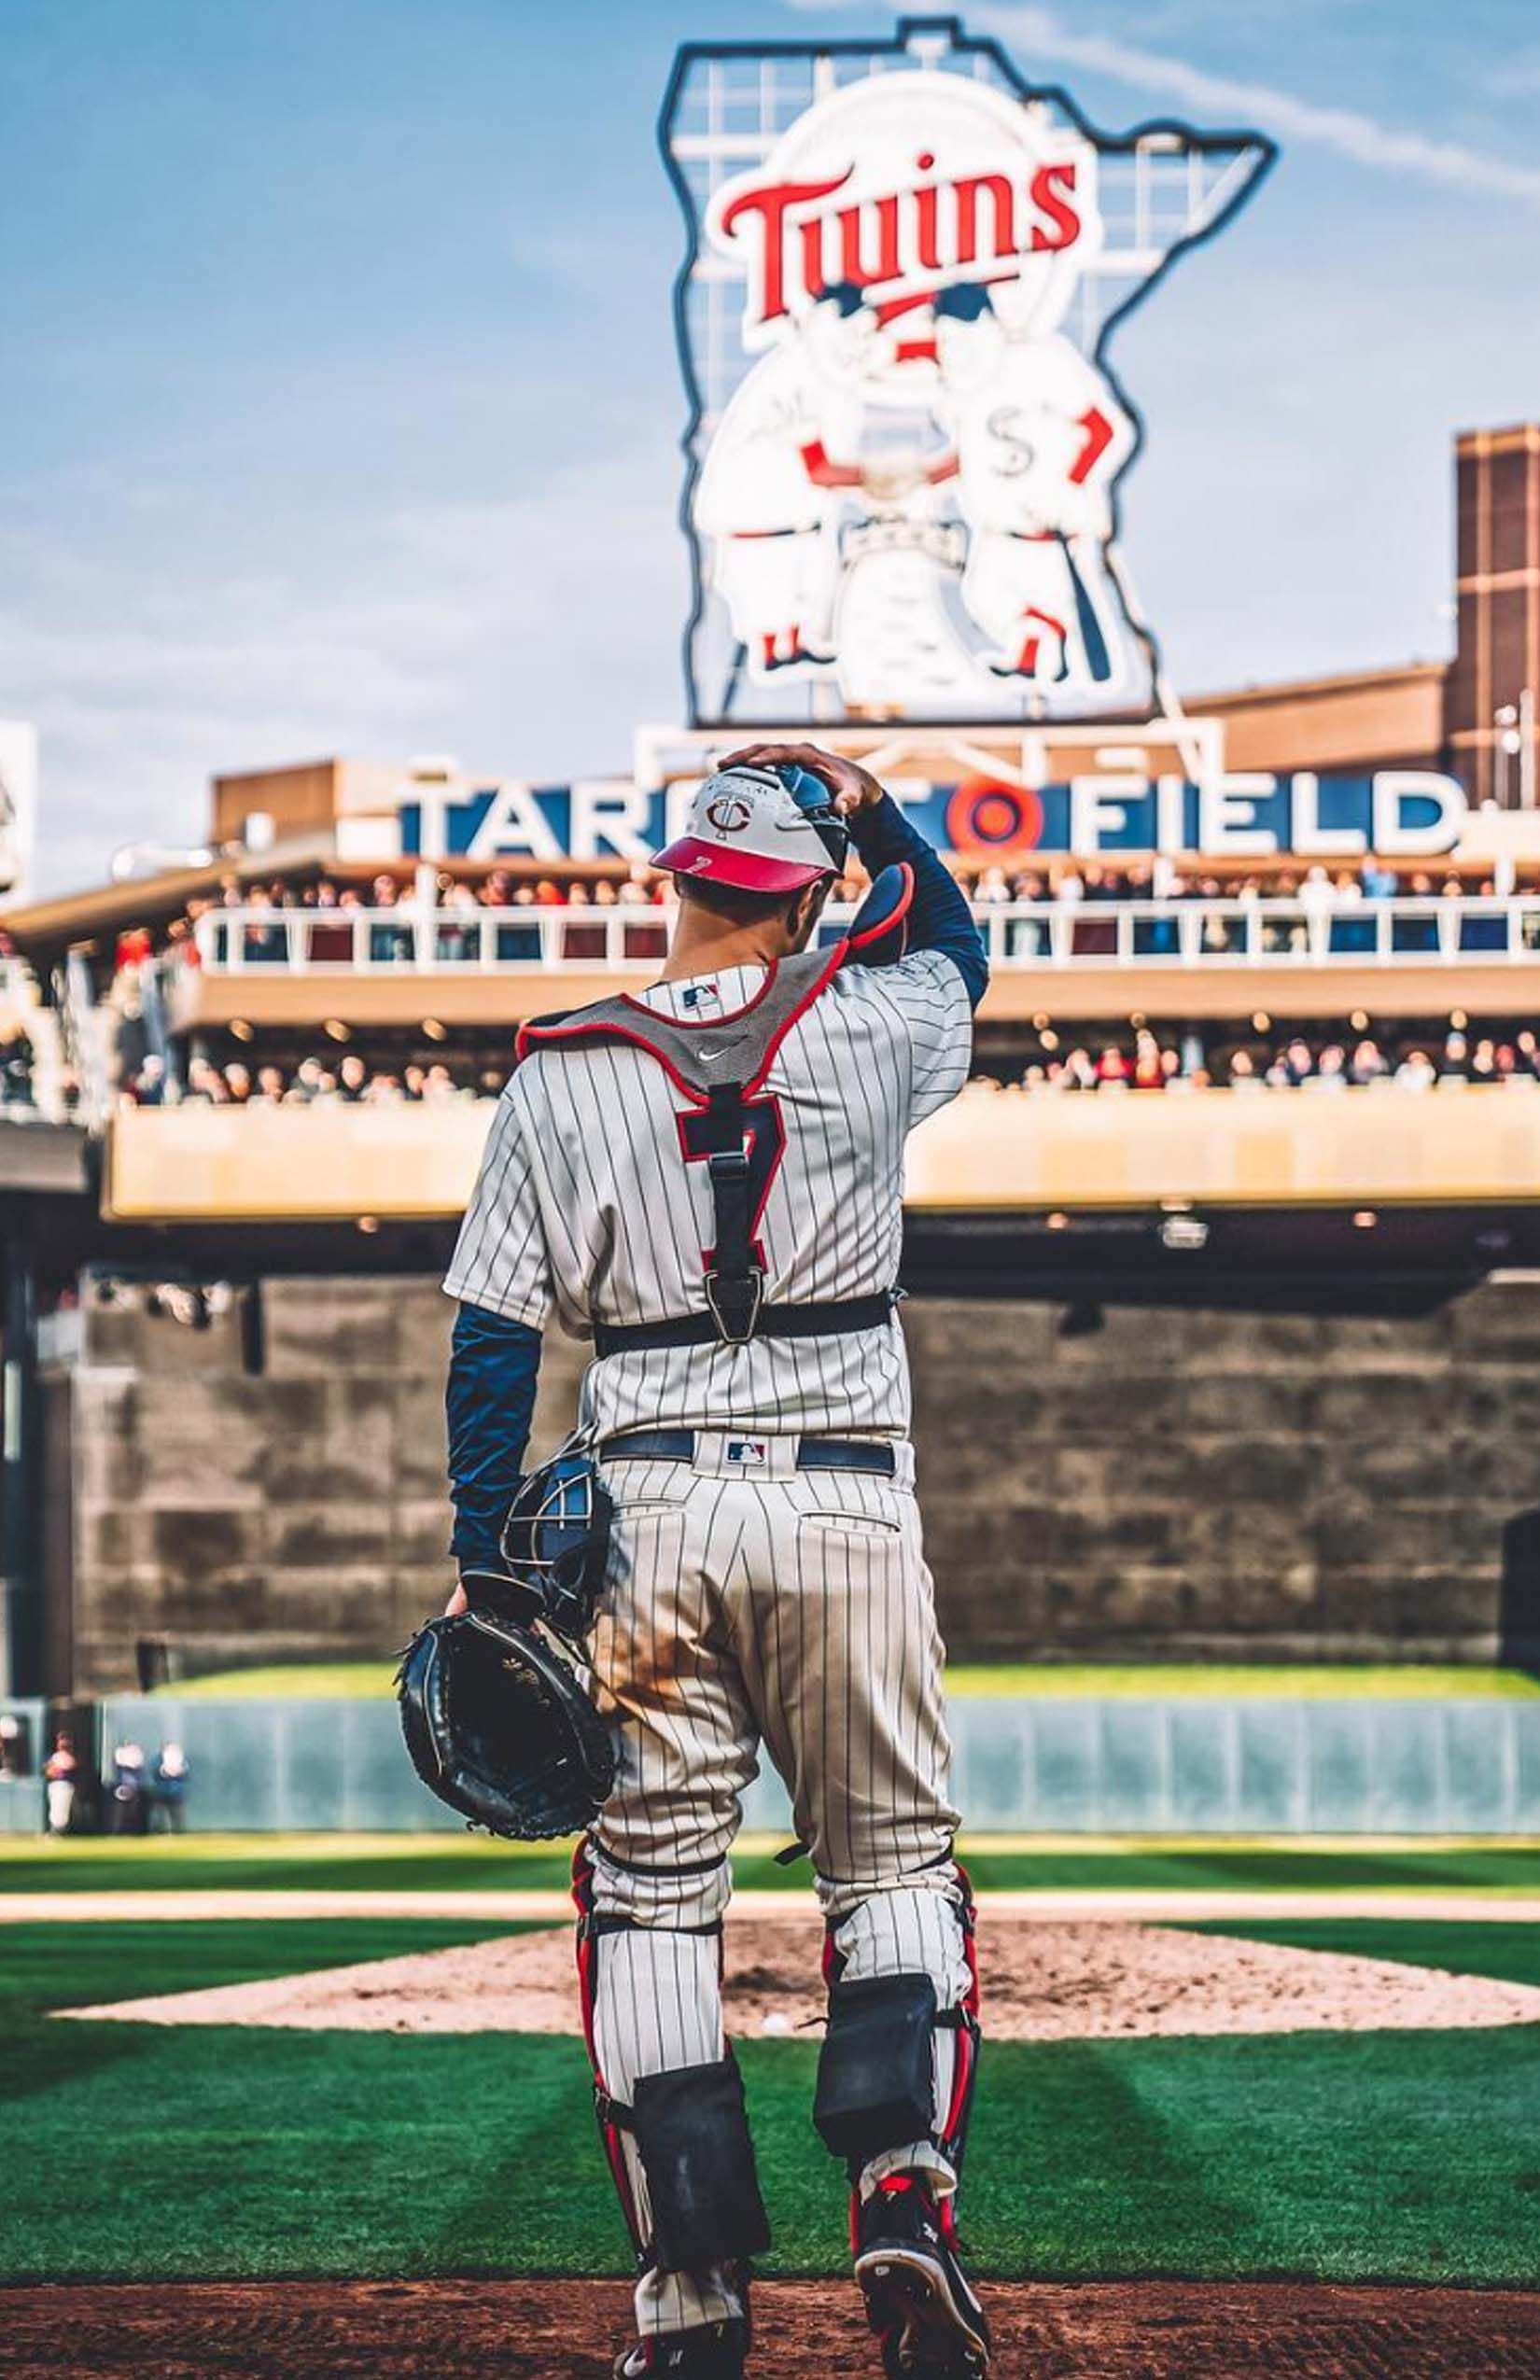 Joe Mauer Puts On The Tools Of Ignorance Once Last Time Greatest Catcher Twins History Minnesota Twins Twins Baseball Minnesota Twins Baseball